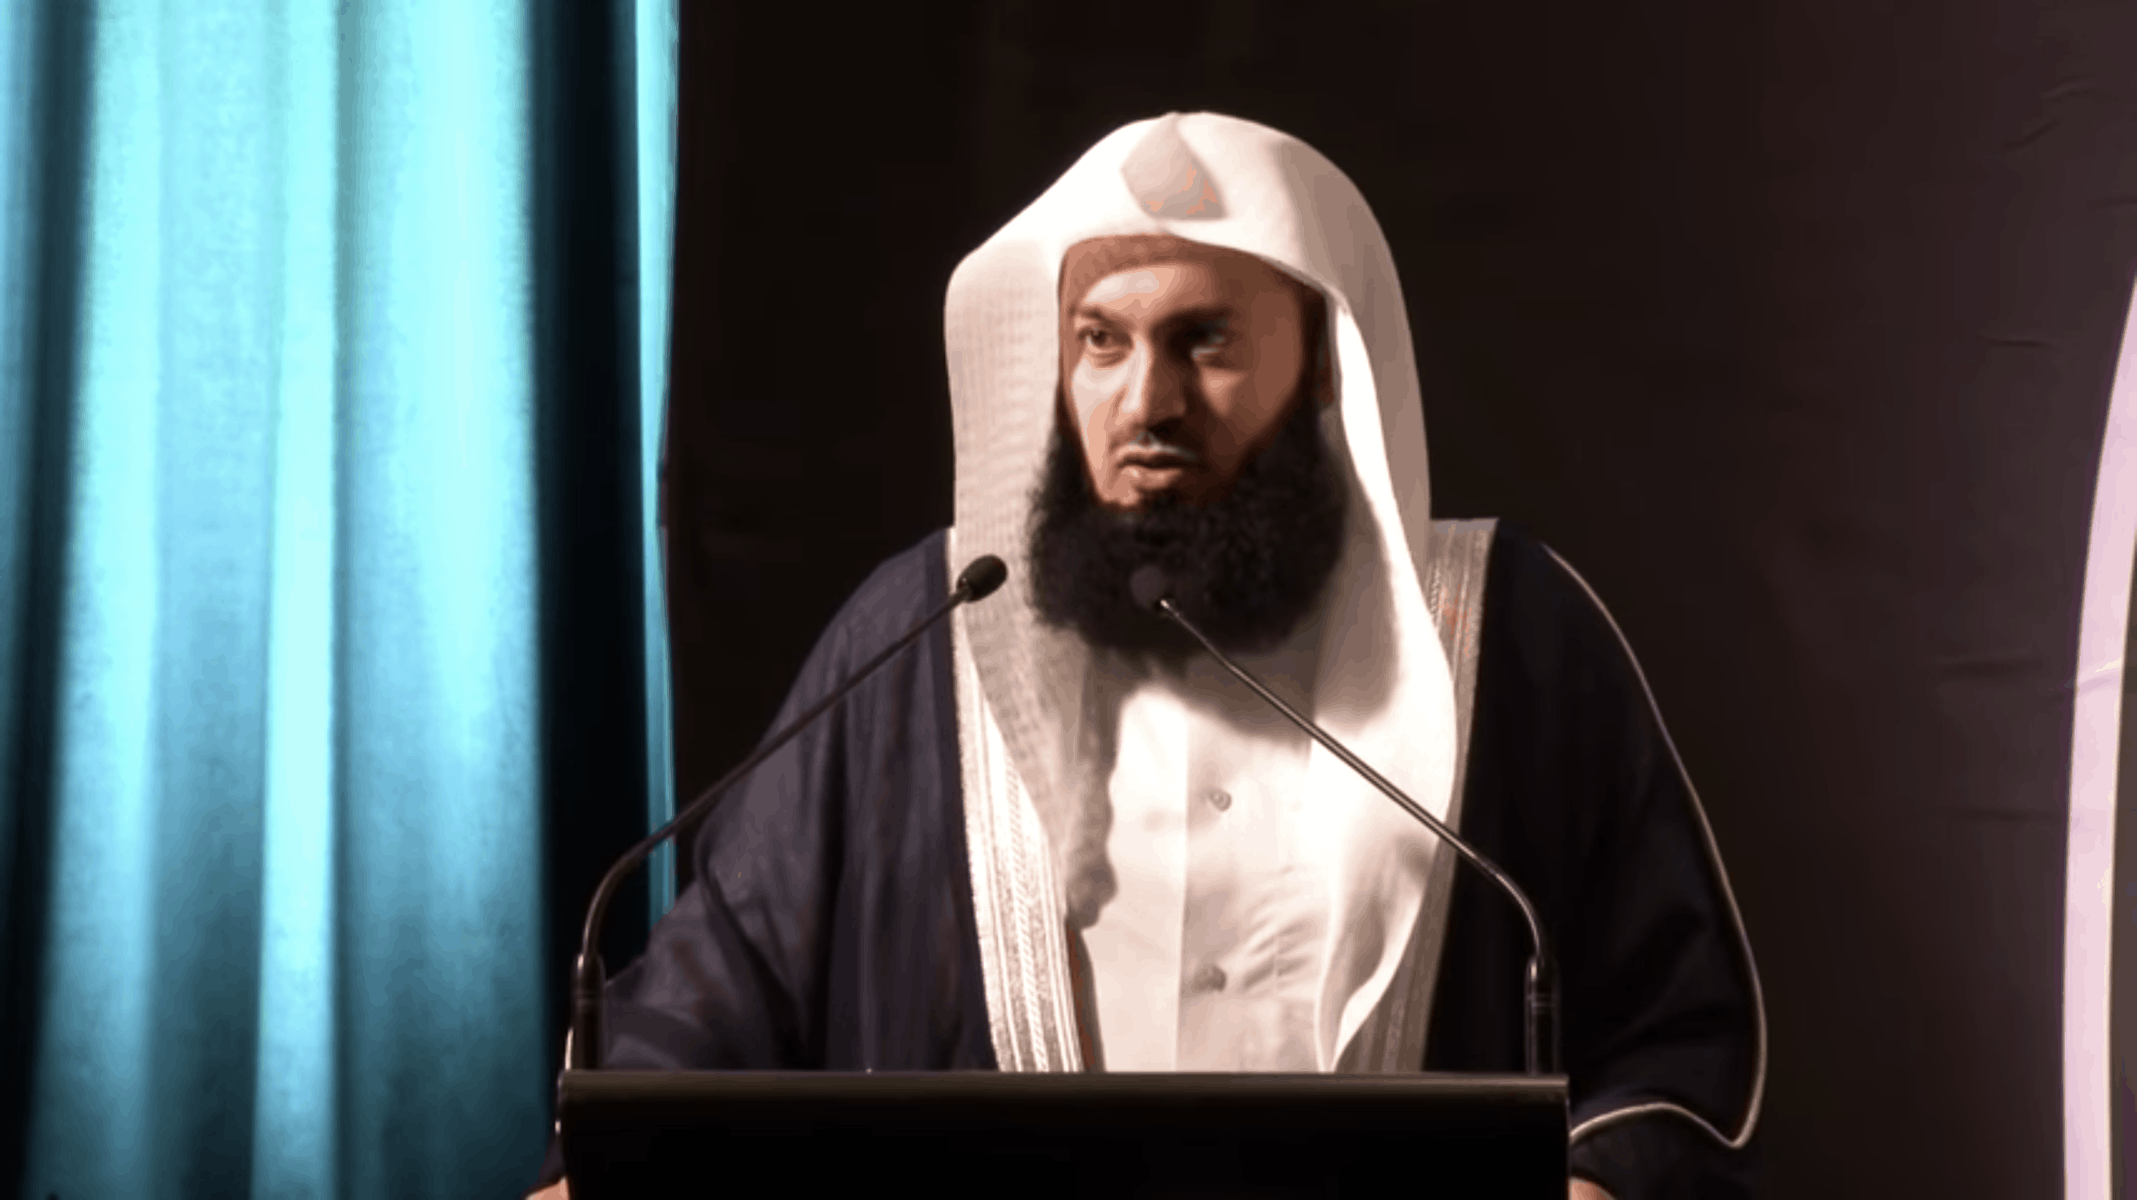 Ismail ibn Musa Menk – Family & Community